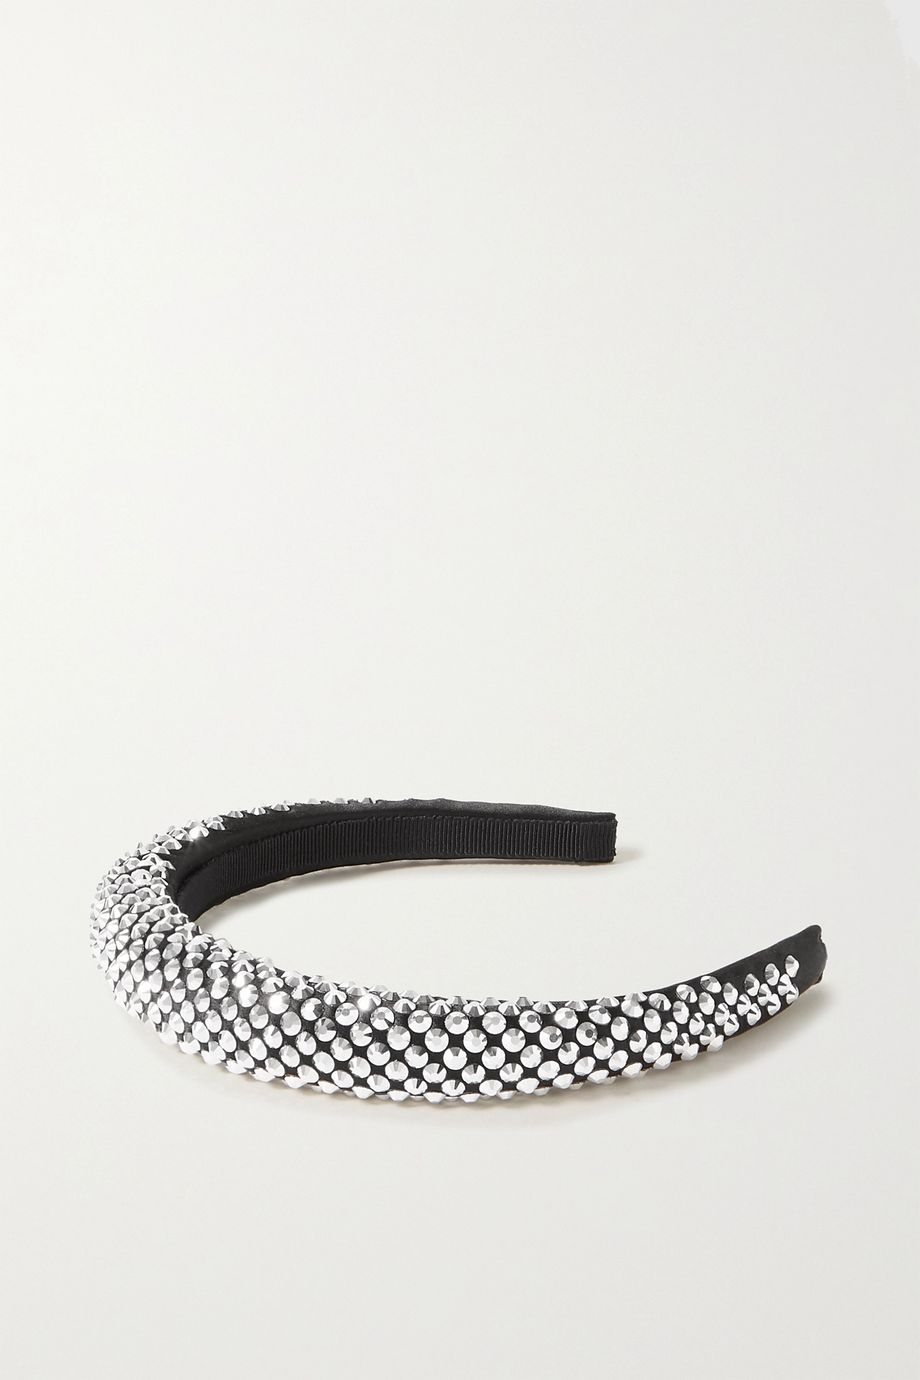 Prada Crystal-embellished satin headband